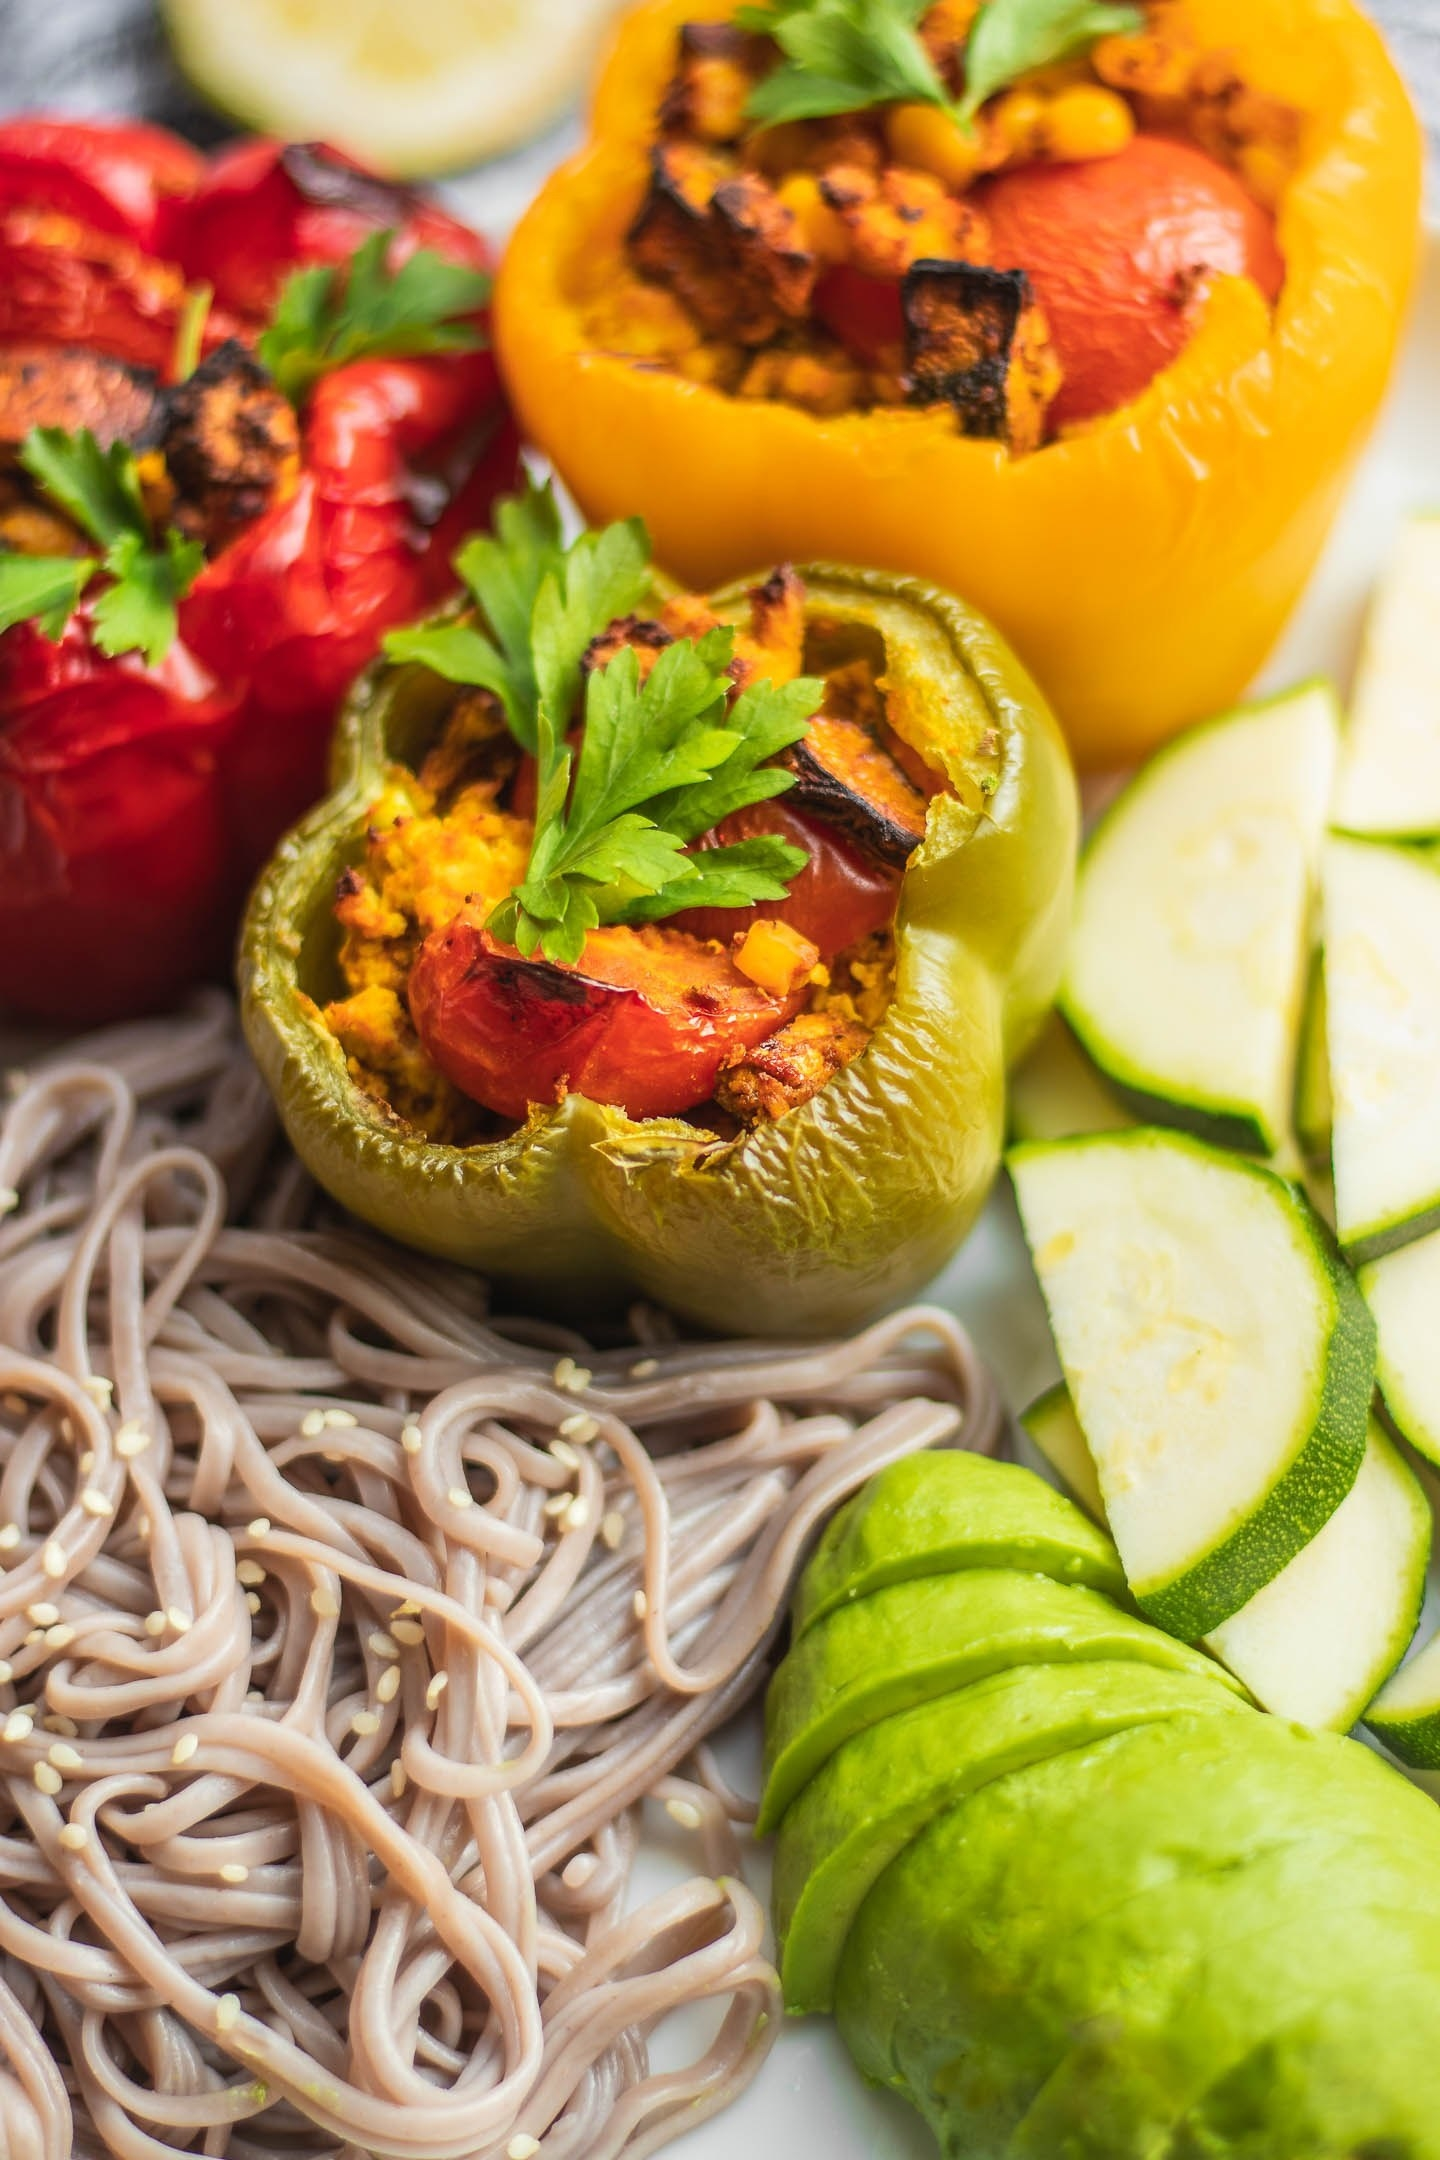 Stuffed peppers are a meal prep staple. From rice and beans to meat and cheese, there are basically no limits to the variations you can make with this classic. Mushroom and tofu, however, is a high-protein vegan option that couldn't be easier to put together. Get the recipe here.